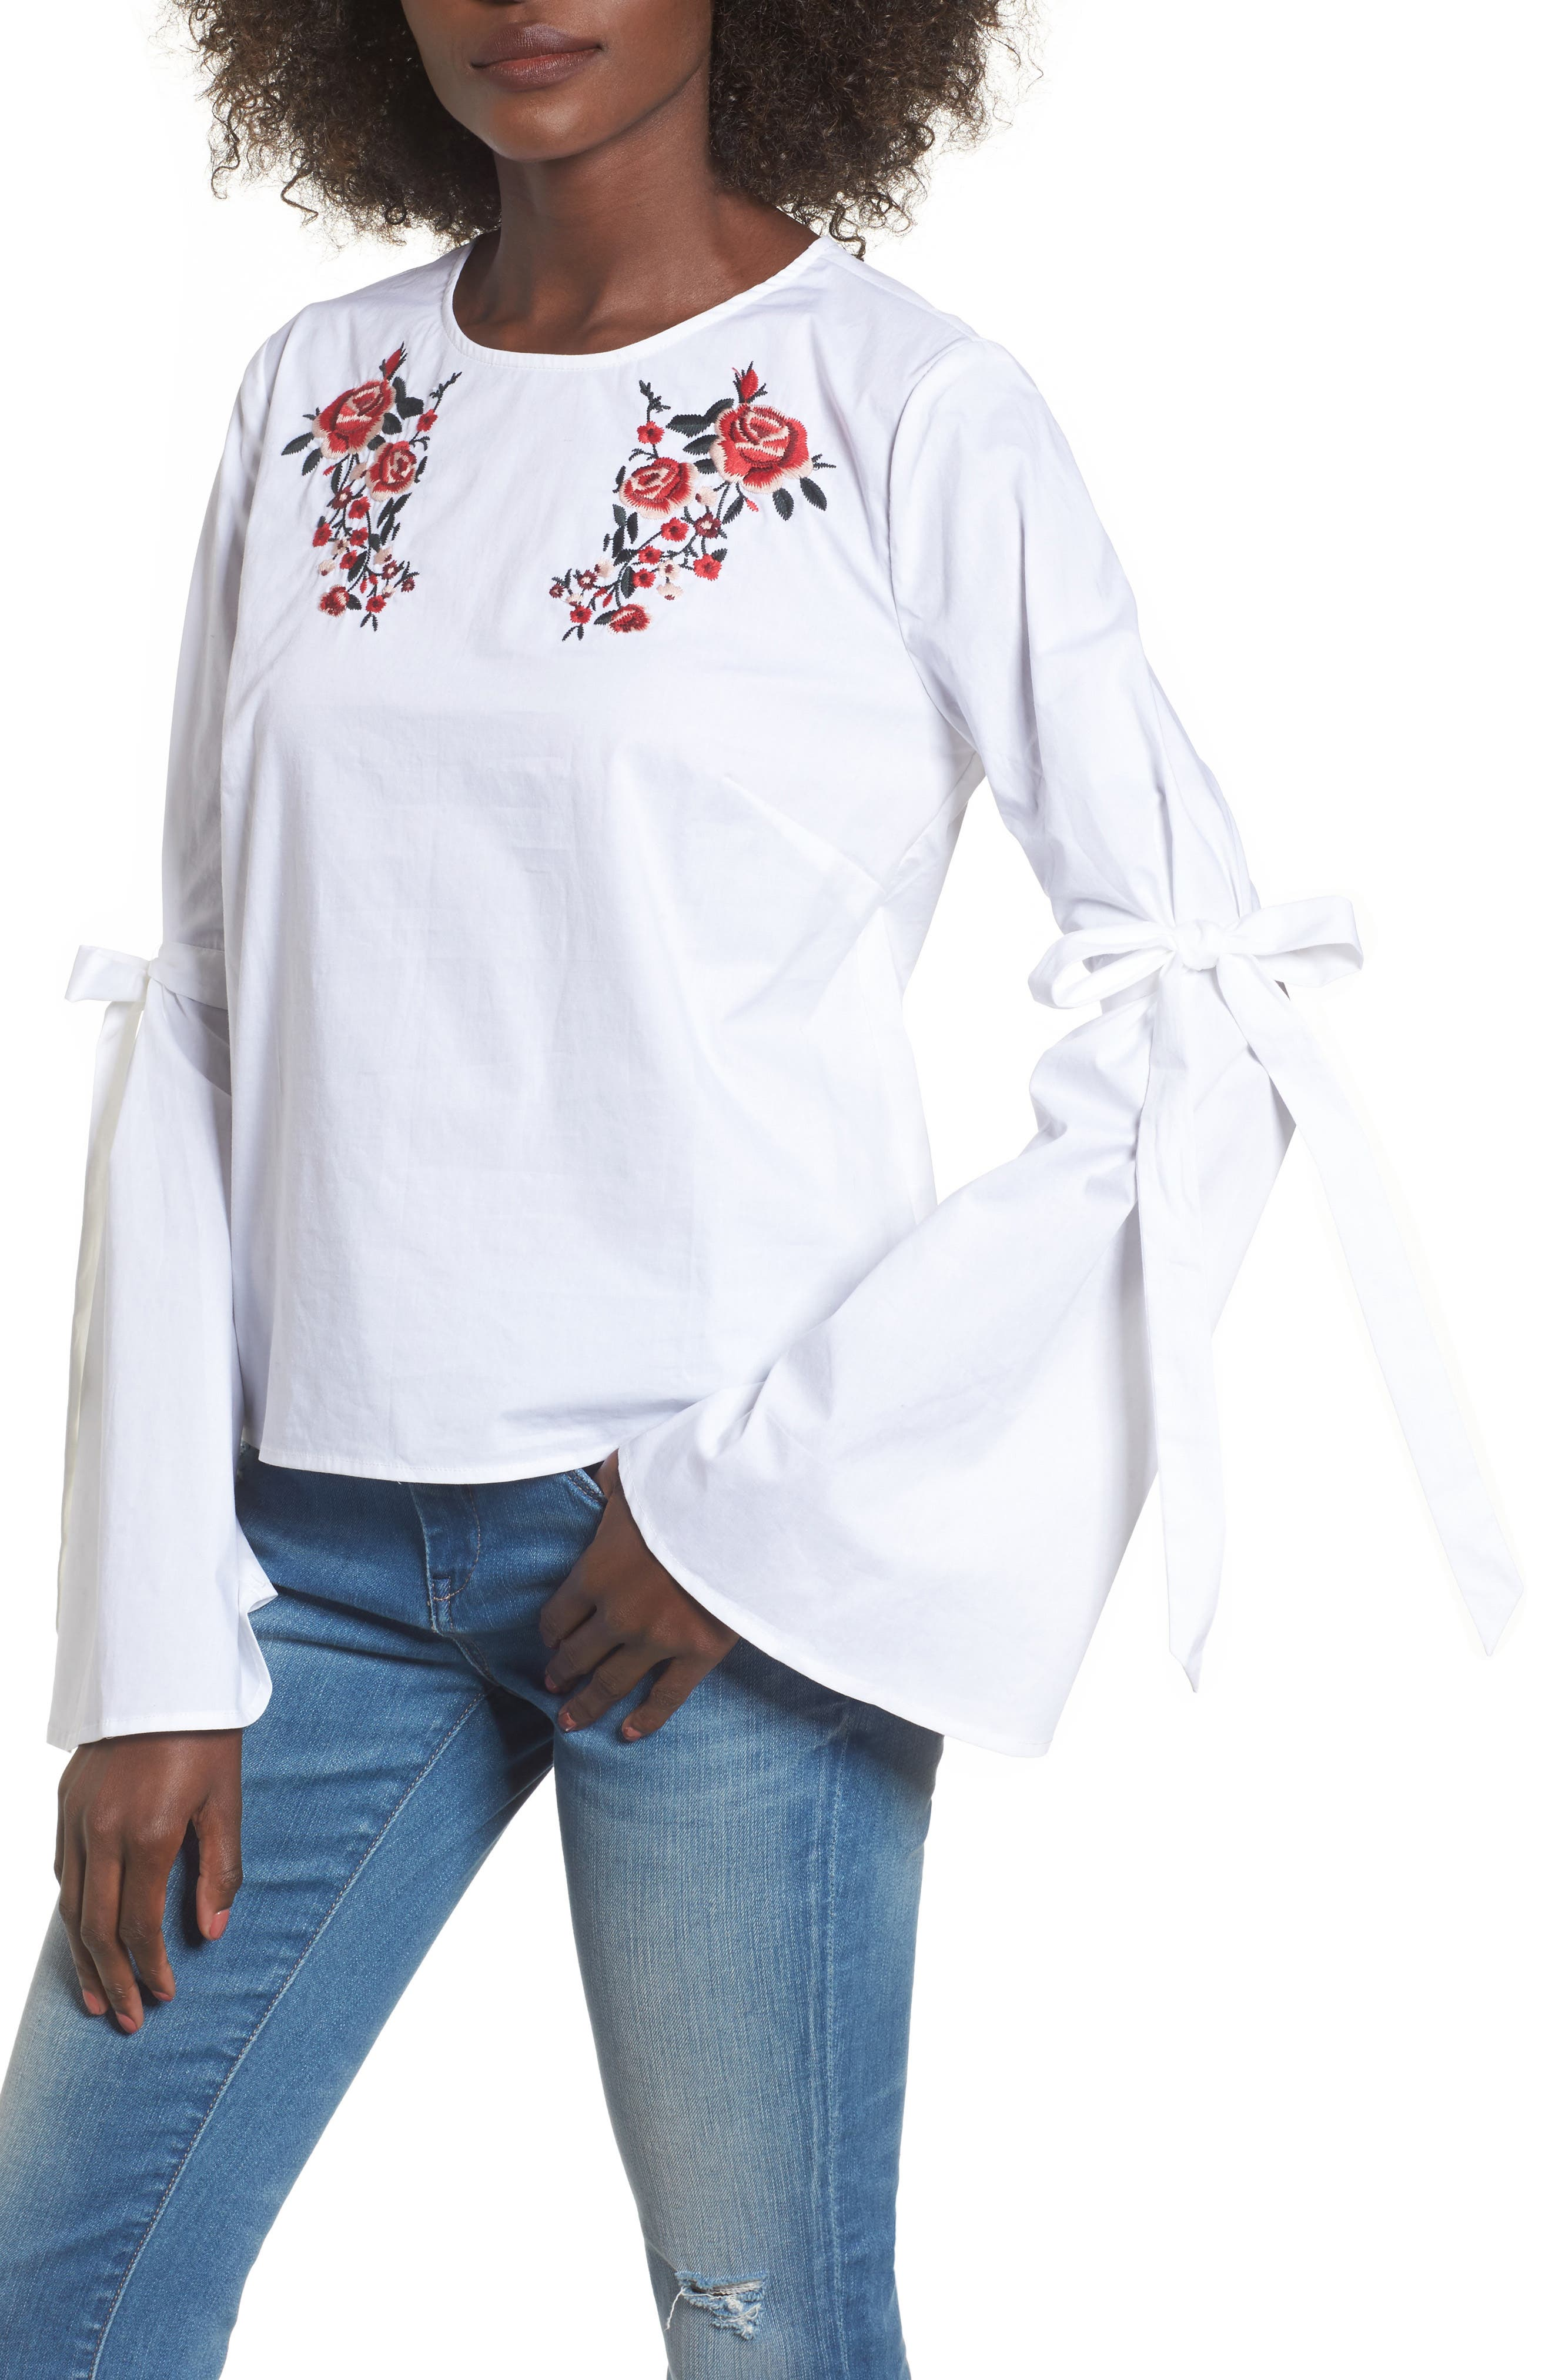 Chloe & Katie Floral Embroidery Bell Sleeve Top